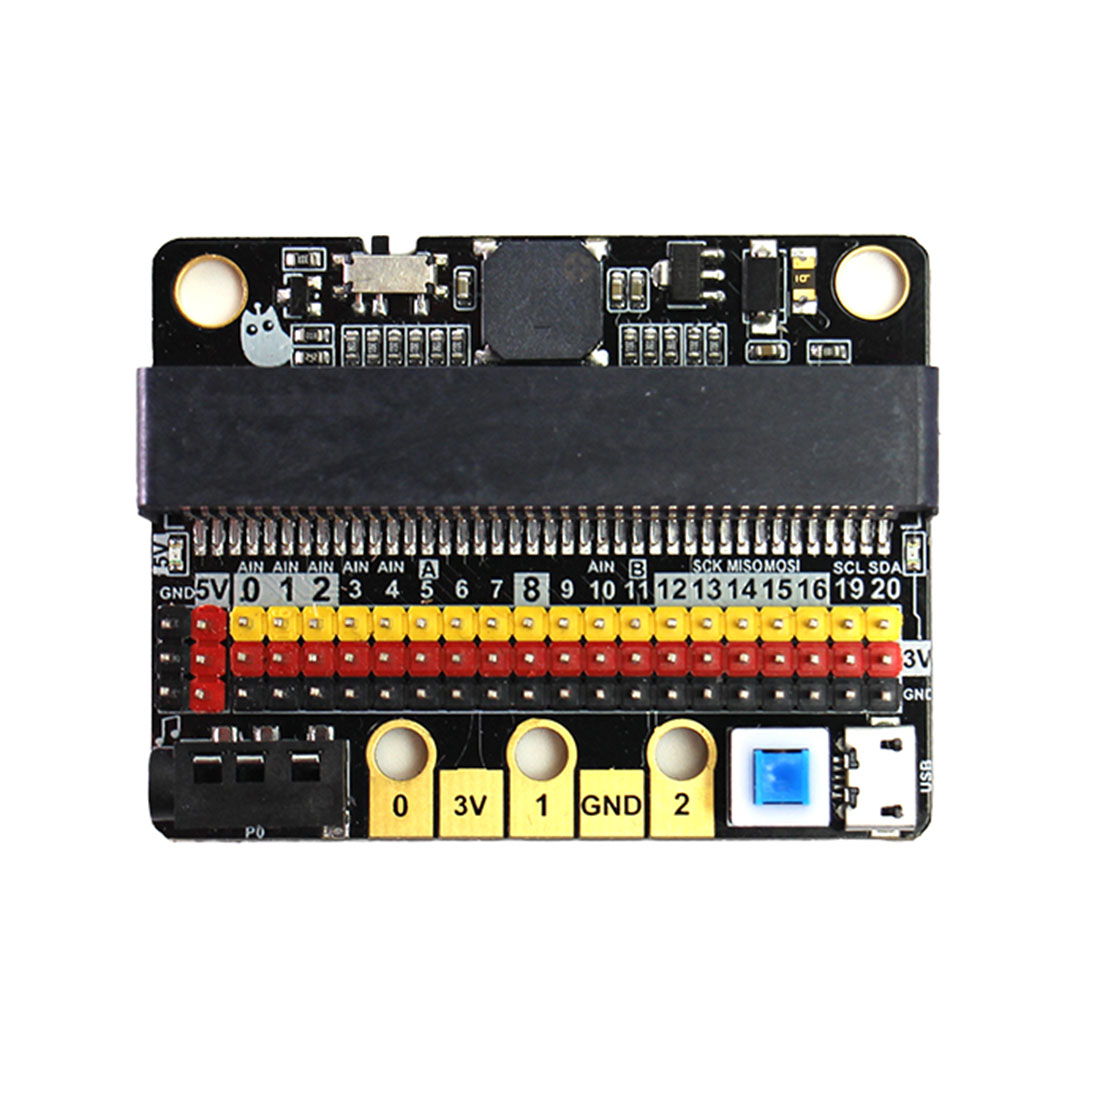 MODIKER 2020 New Arrival For Microbit IOBIT V1.0 V2.0 Development Board Expansion Board STEM Educational Toy Accessories